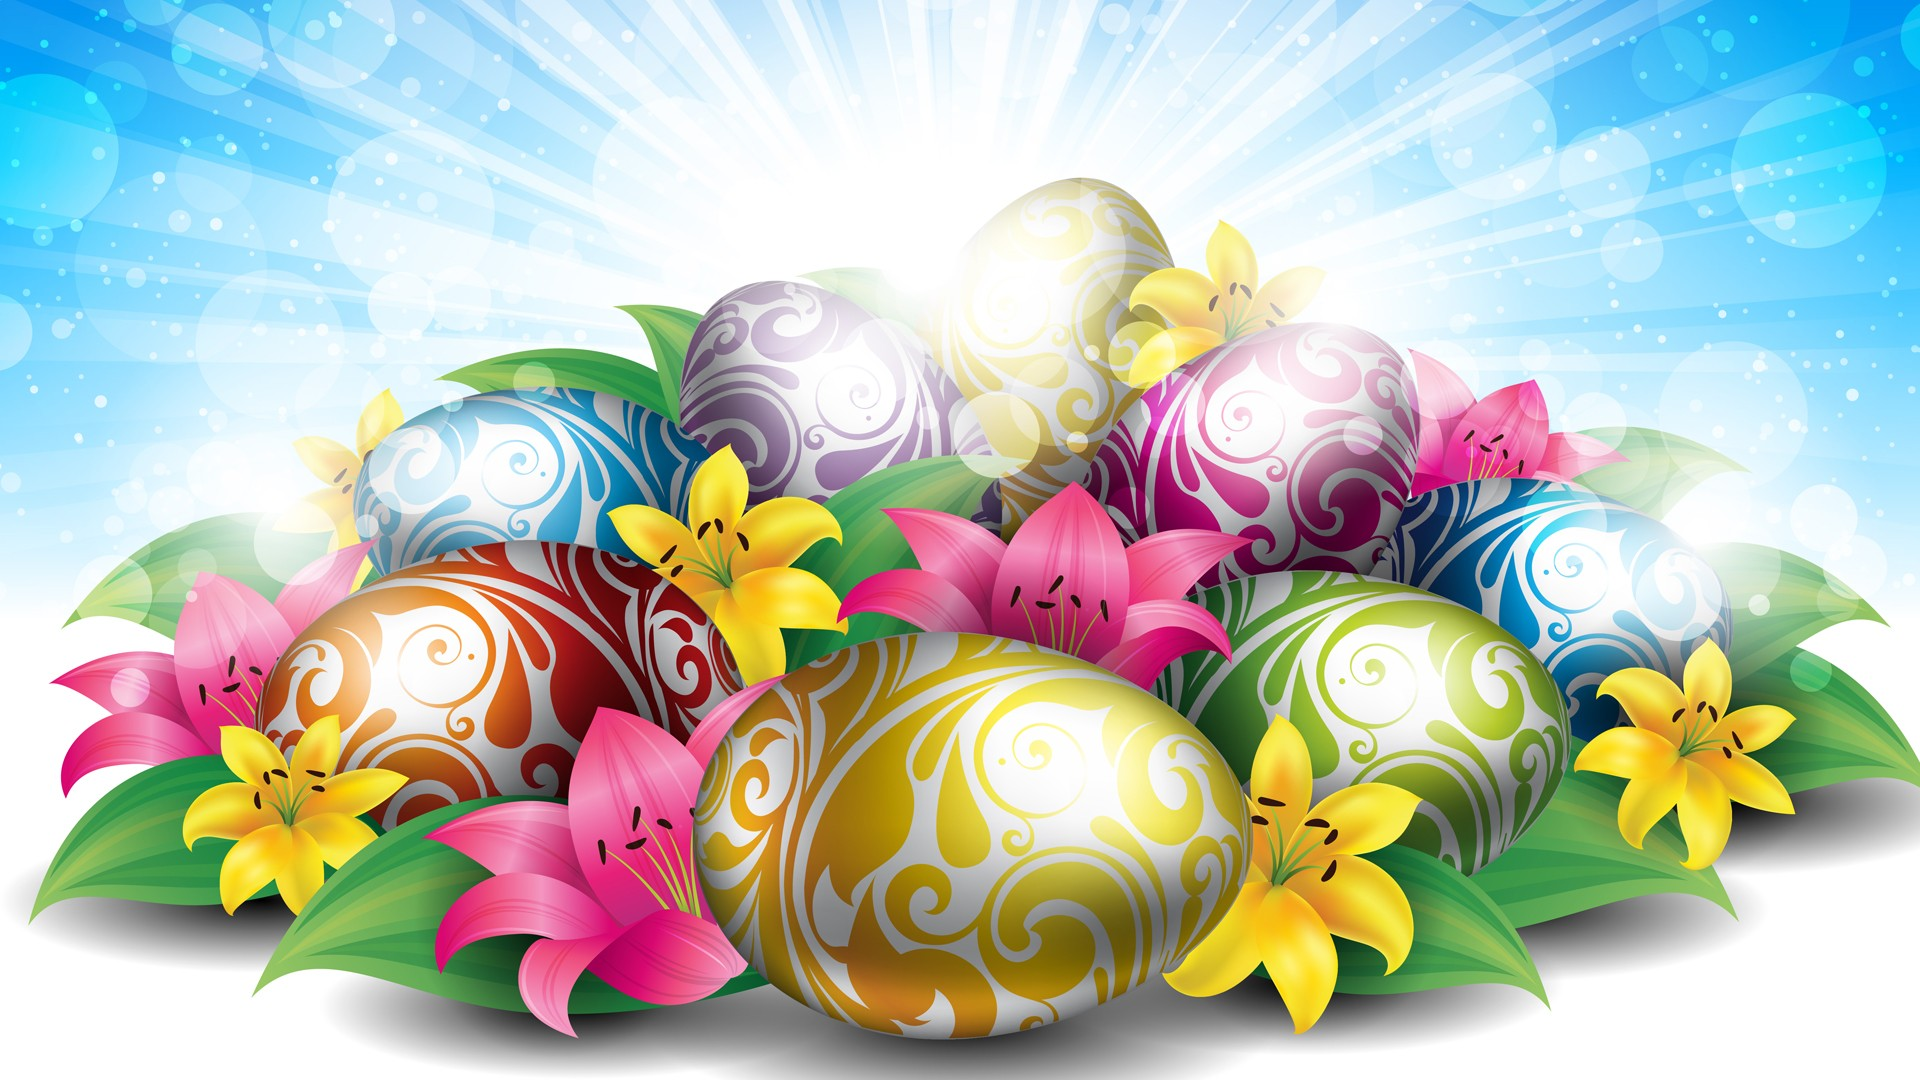 hd wallpaper lilies eggs for easter   Background 1920x1080